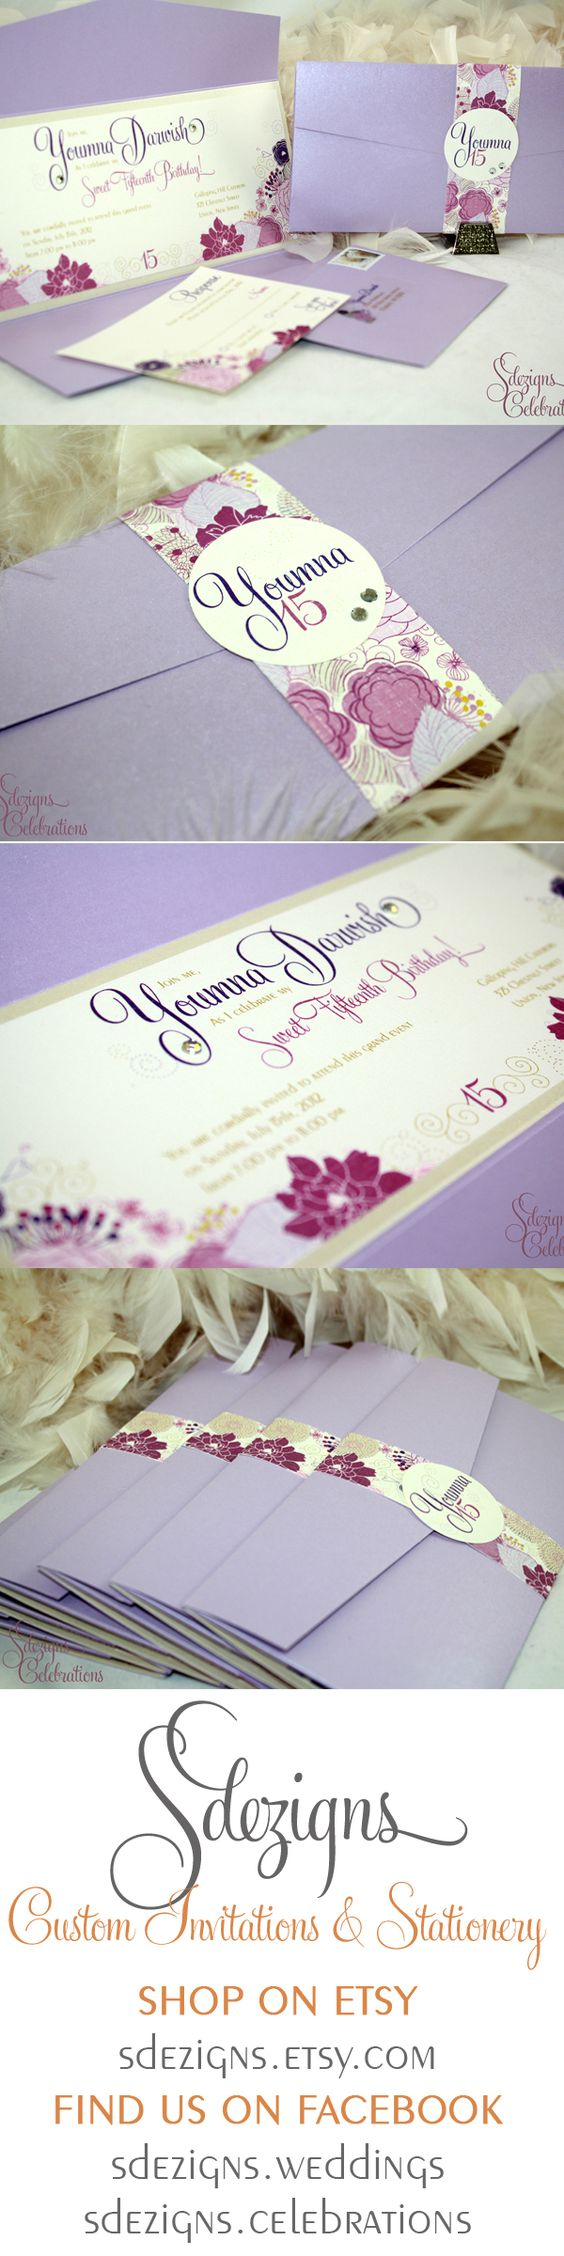 These gorgeous Flower Garden inspired invitations were designed for a quinceanera. A mix of lavender, pinks, purples and creams make up the flower garden design